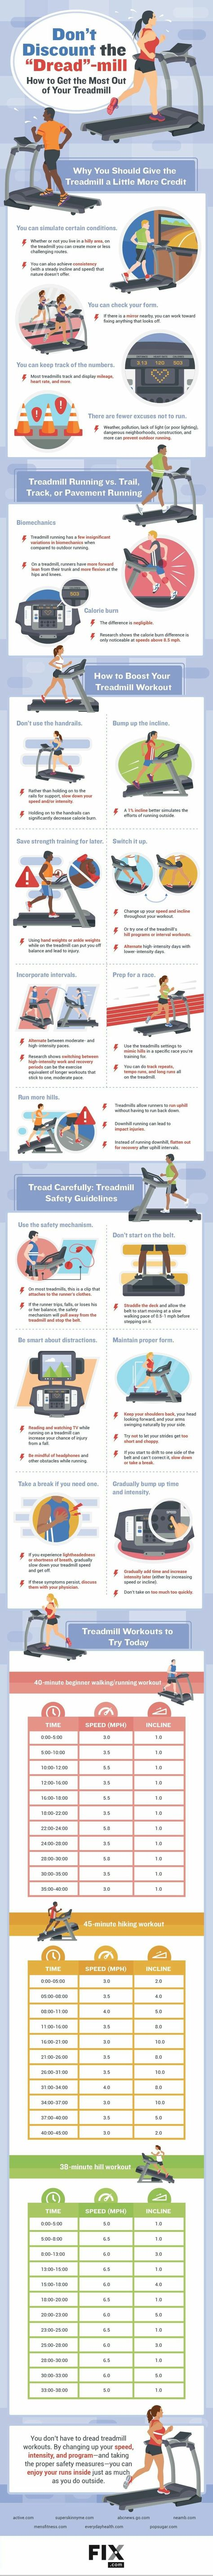 running Tips for treadmill training...